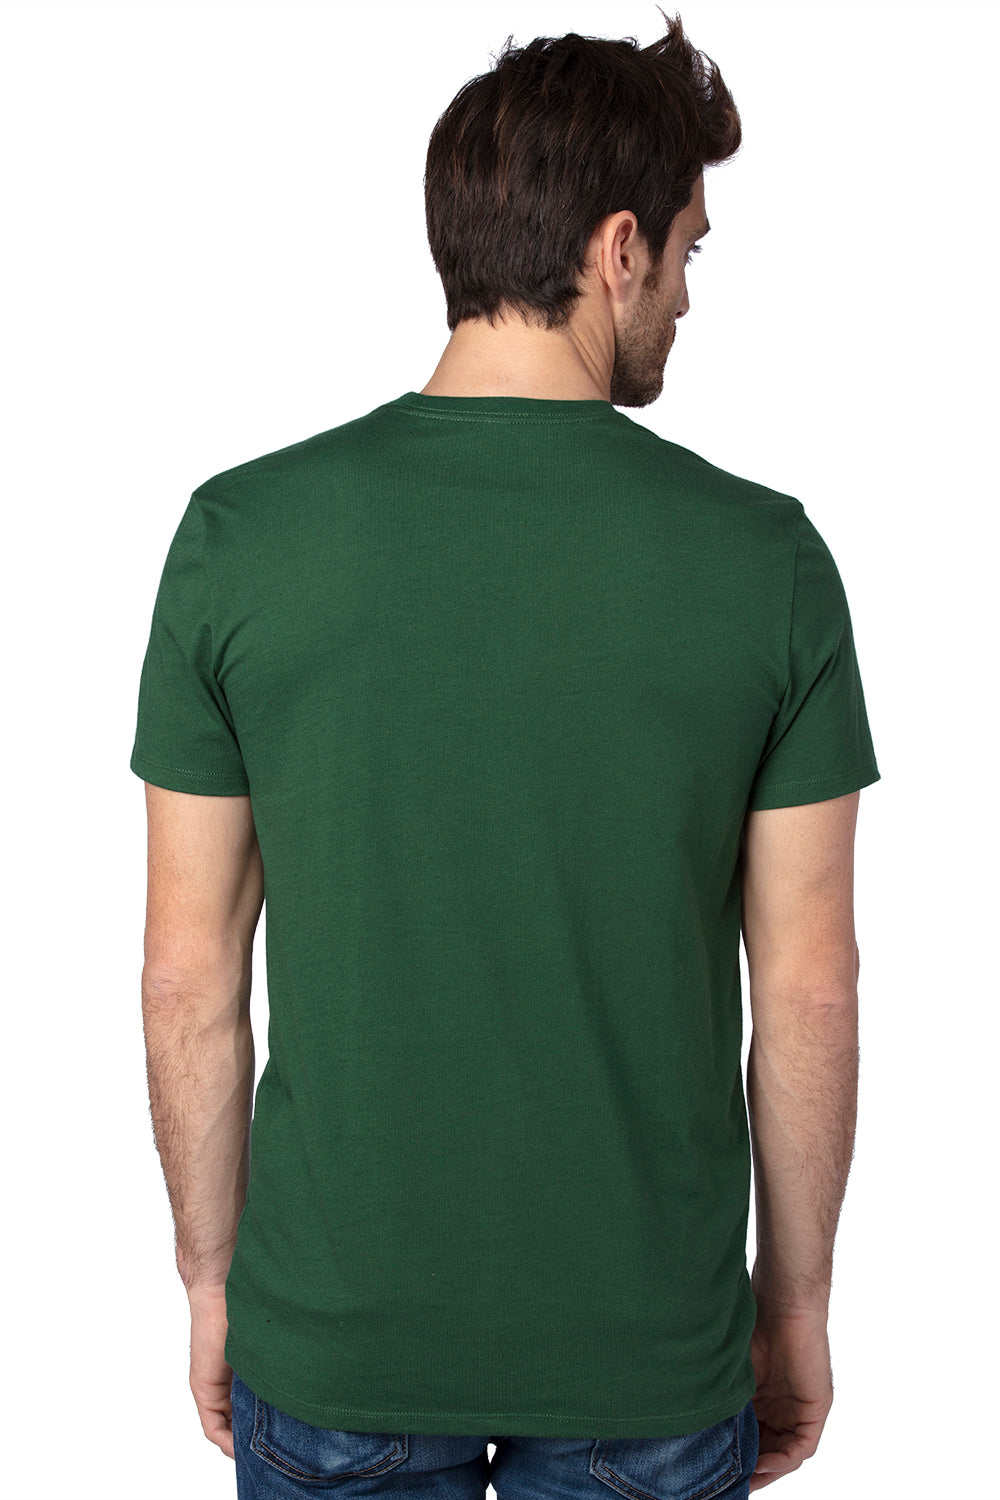 Threadfast Apparel 100A Mens Ultimate Short Sleeve Crewneck T-Shirt Forest Green Back